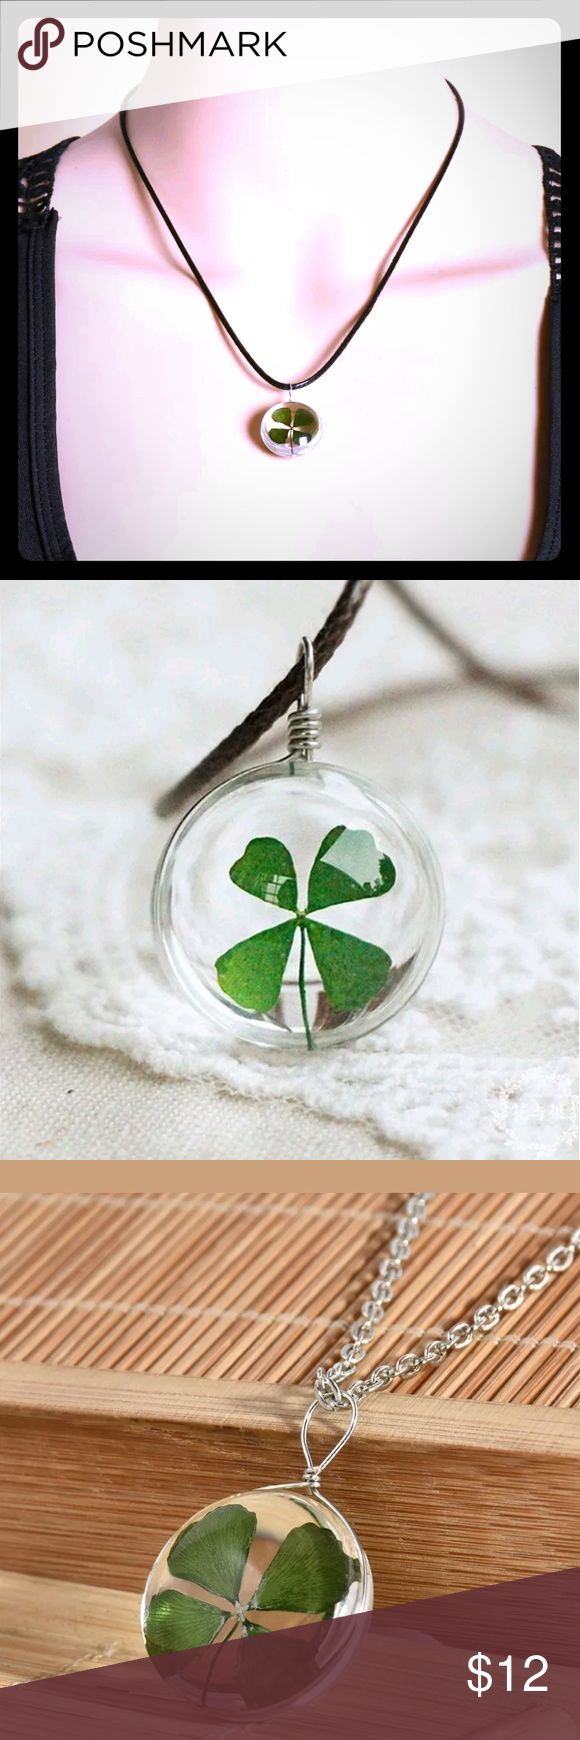 Green lucky shamrock necklace four leaf clover charm emerald green - Lucky Shamrock Necklace Adorable Necklace With Real Four Leave Clover Encased In Glass Pendant